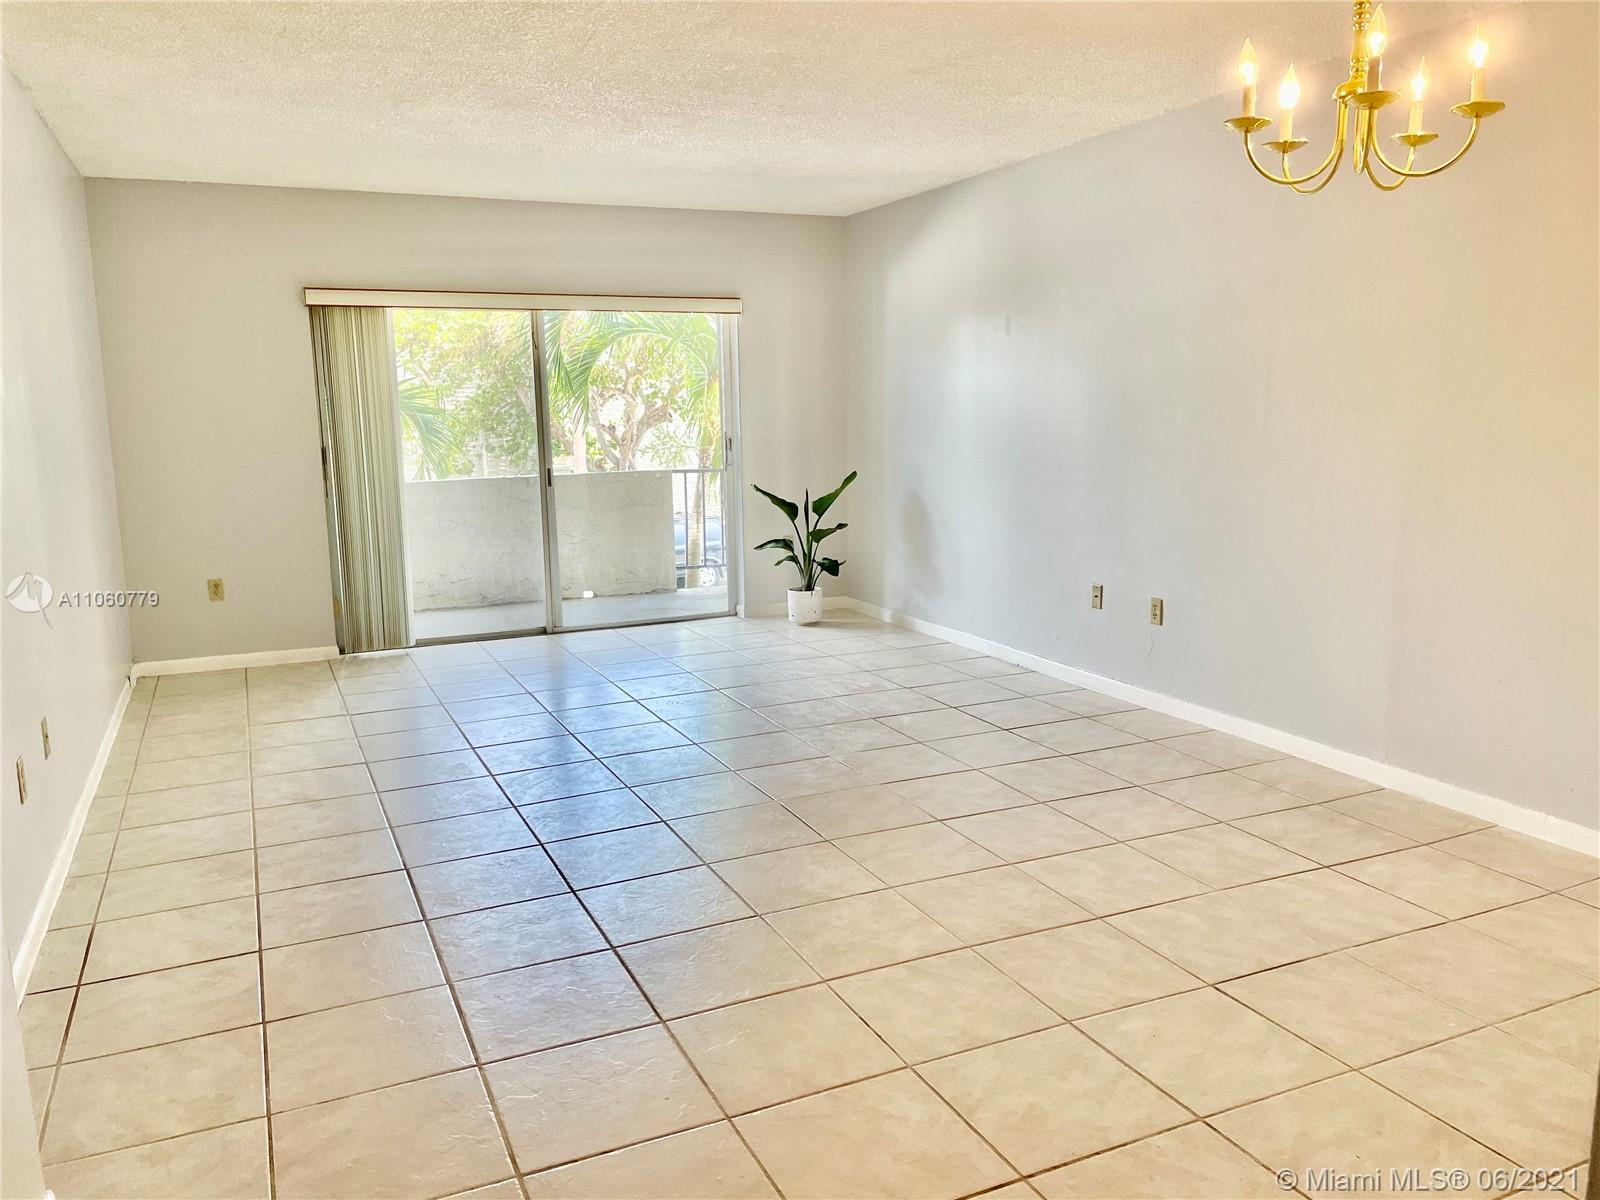 6902 N Kendall Dr #E204 For Sale A11060779, FL